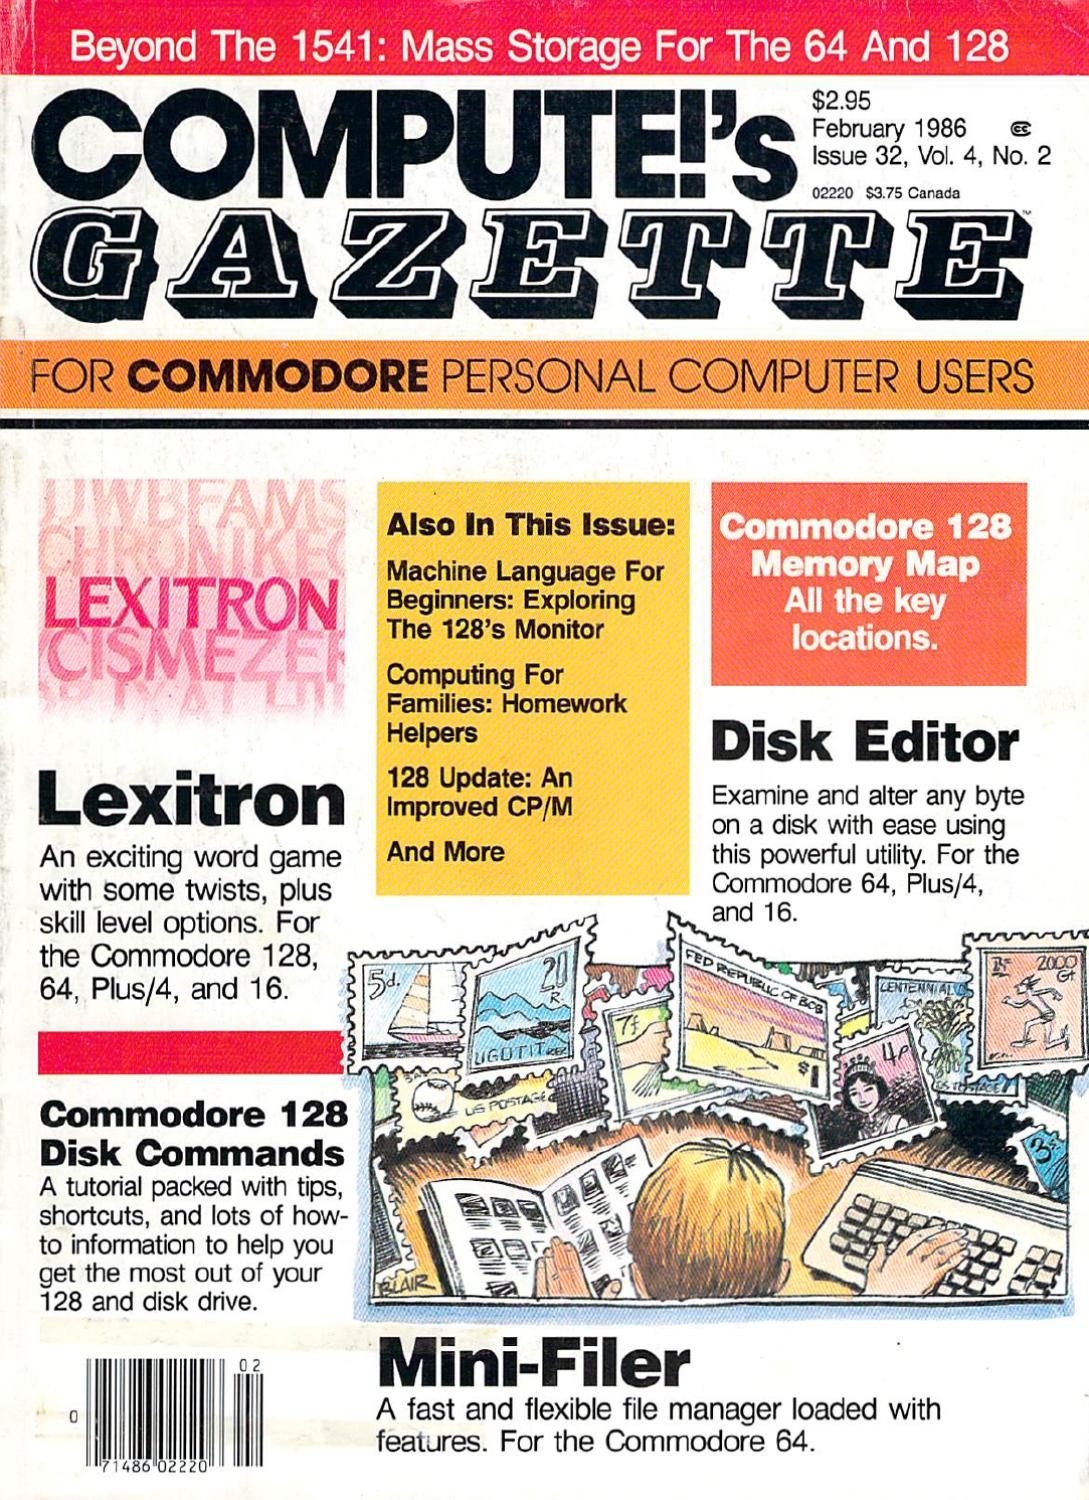 Compute Gazette Issue 32 1986 Feb By Zetmoon Issuu Issues With 317 Driver Laser Pointer Forums Discuss Pointers